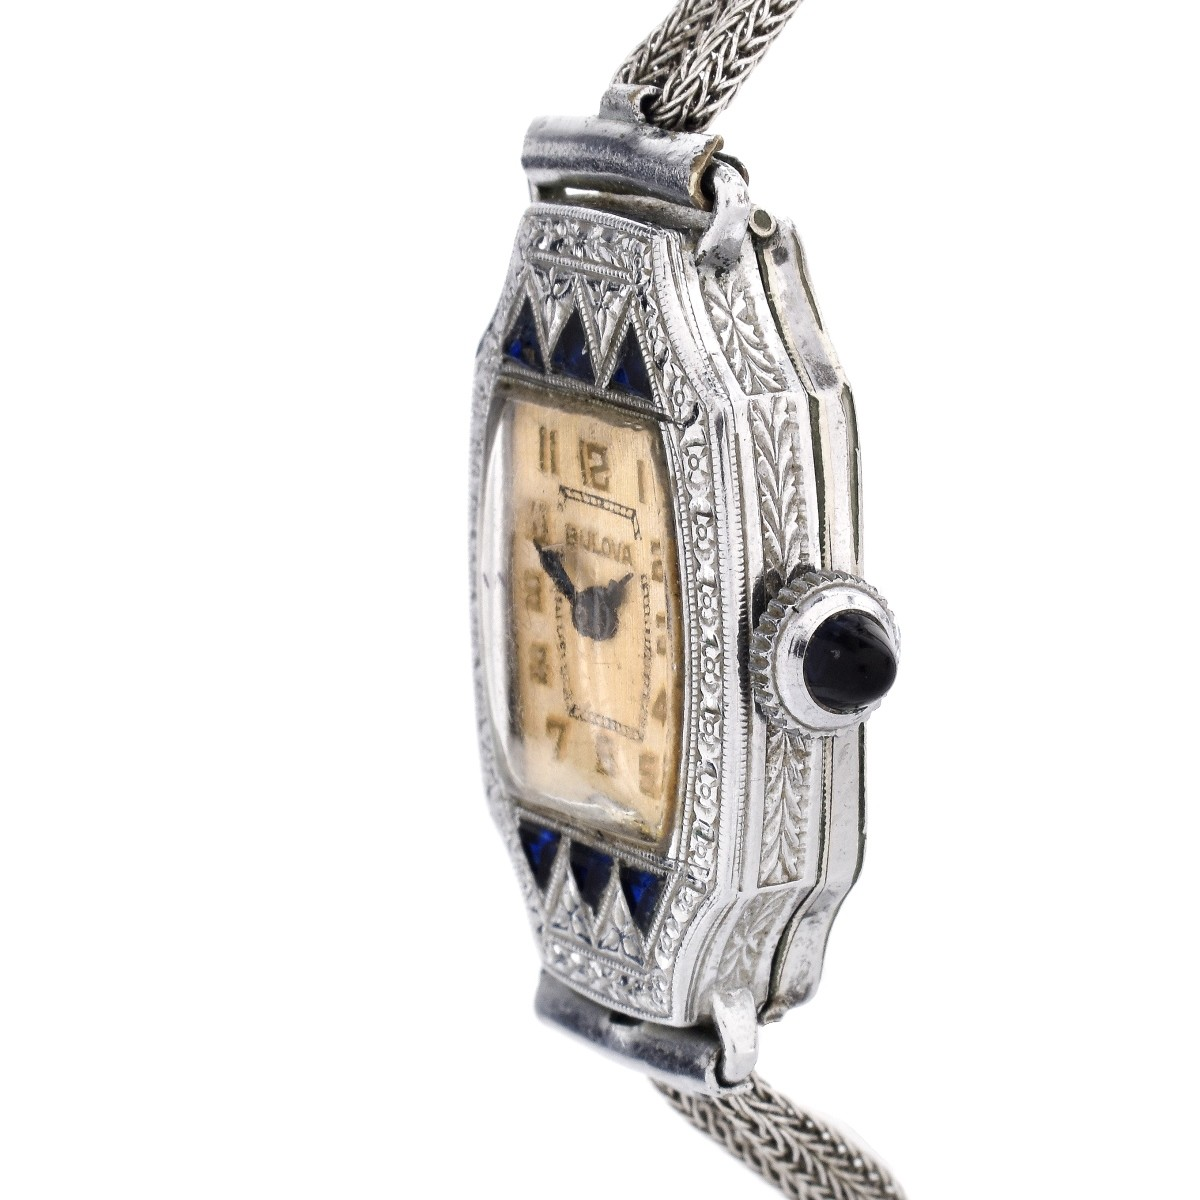 Lady's Bulova Bracelet Watch